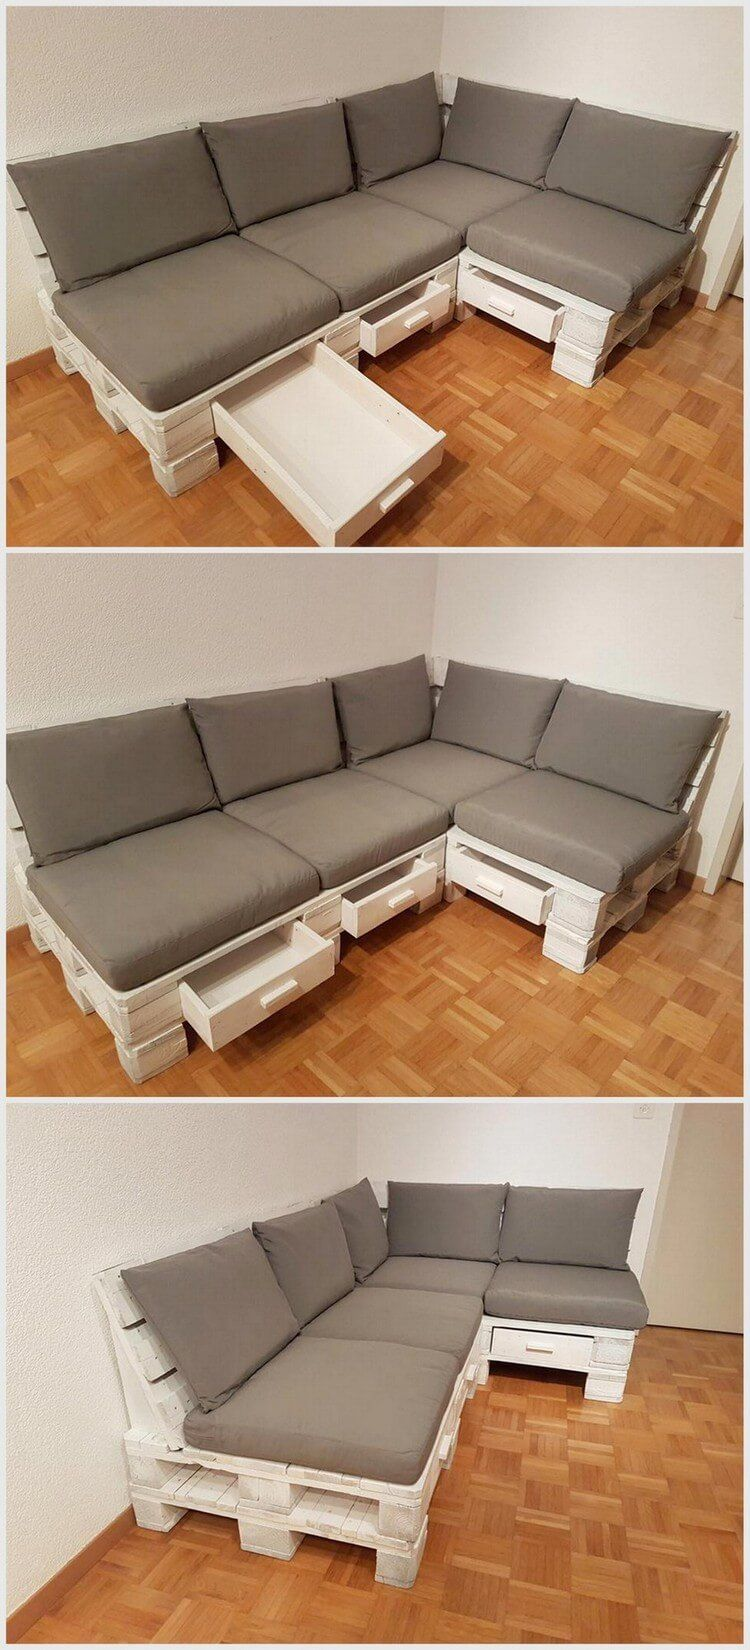 You Can Beautify Your Place By Reusing These Old Wooden Pallets We Have Made A Couch In L Shaped D Wooden Couch Wooden Pallet Projects Wooden Pallet Furniture